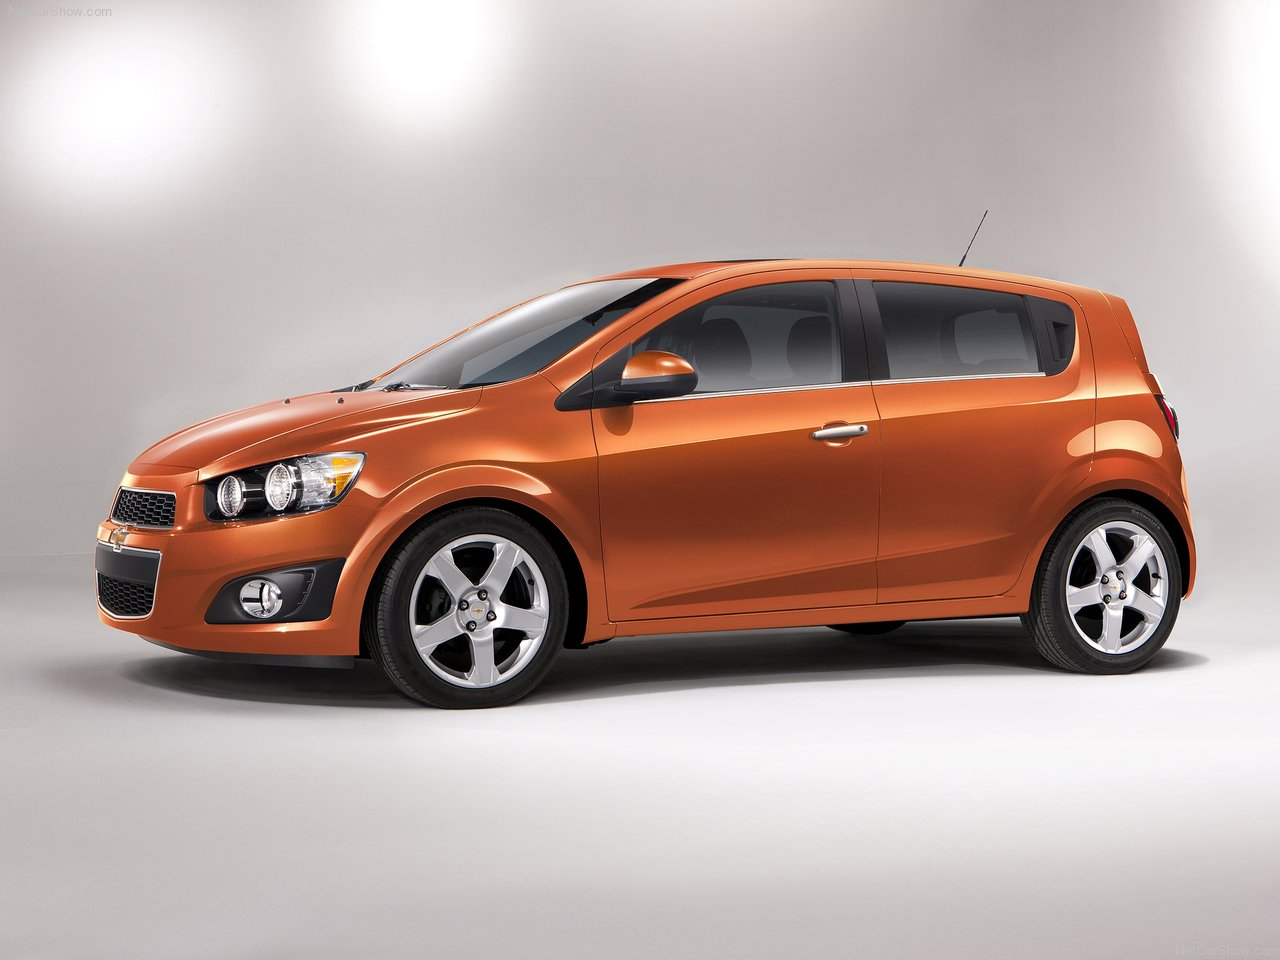 2015 chevrolet sonic photo 12 hiclasscar. Black Bedroom Furniture Sets. Home Design Ideas